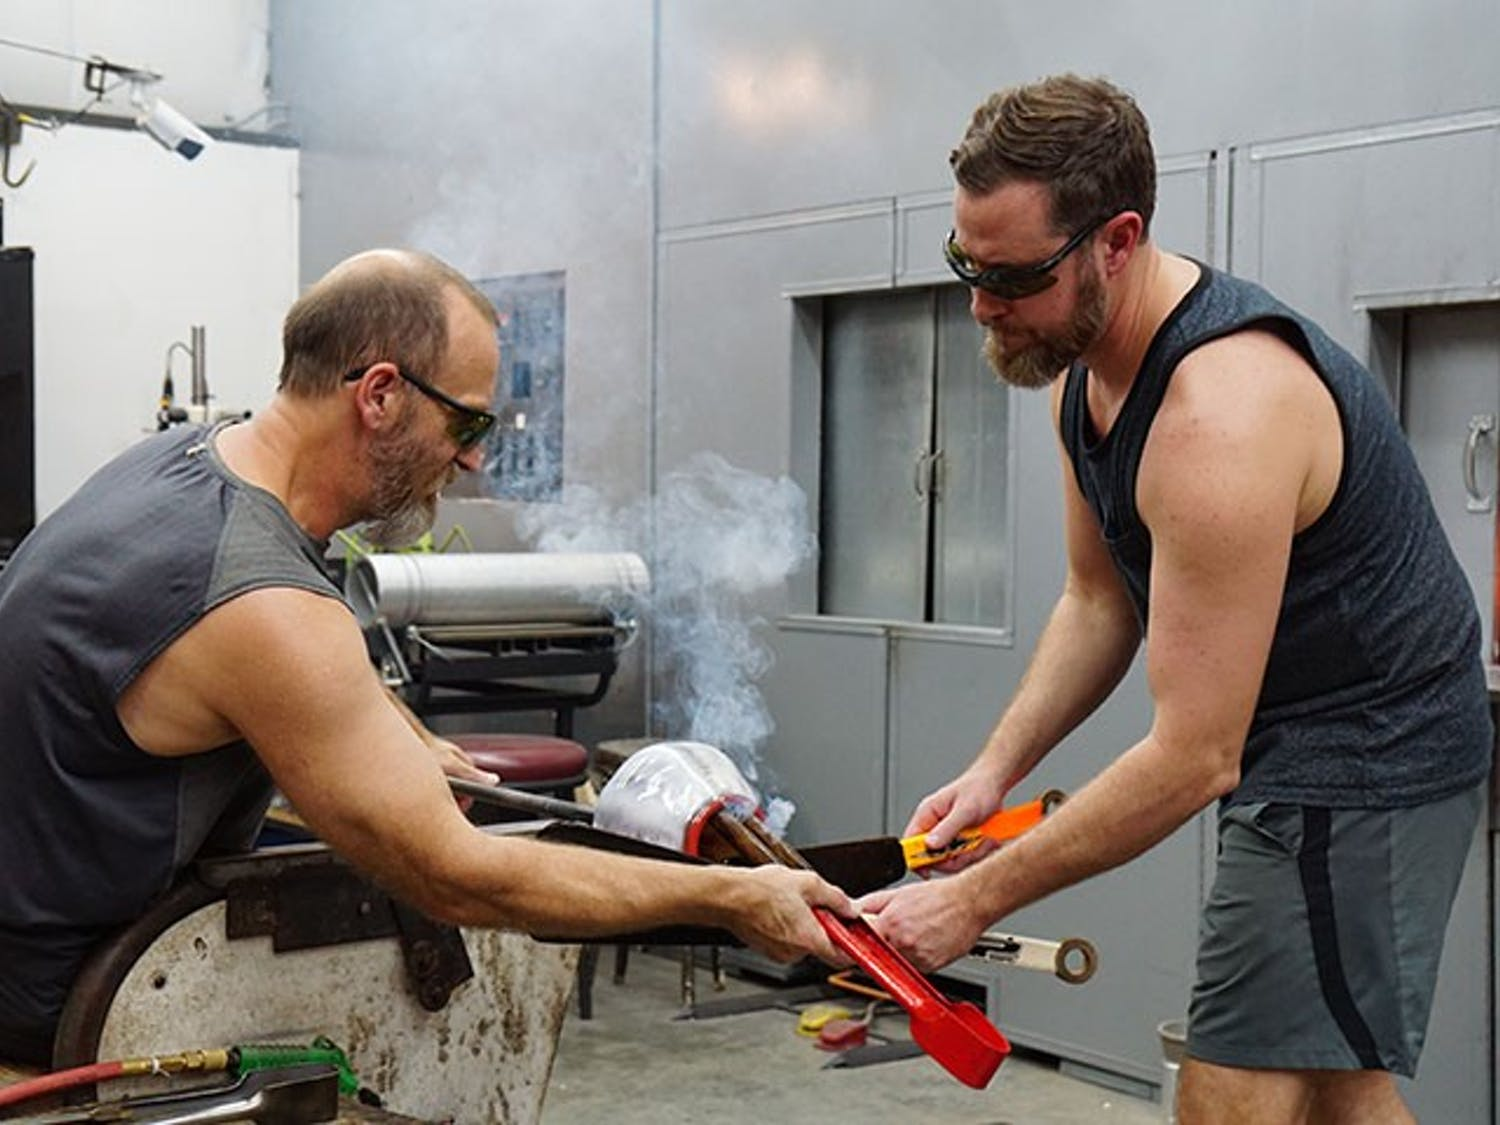 """Tom Lockart and Ryan Crabtree open the top of their molded glass to prepare it to be flattened into a plate while smoke rises. The duo could be heard listening to a playlist of '90s rock while they worked, including the Red Hot Chili Peppers' """"Higher Ground."""""""